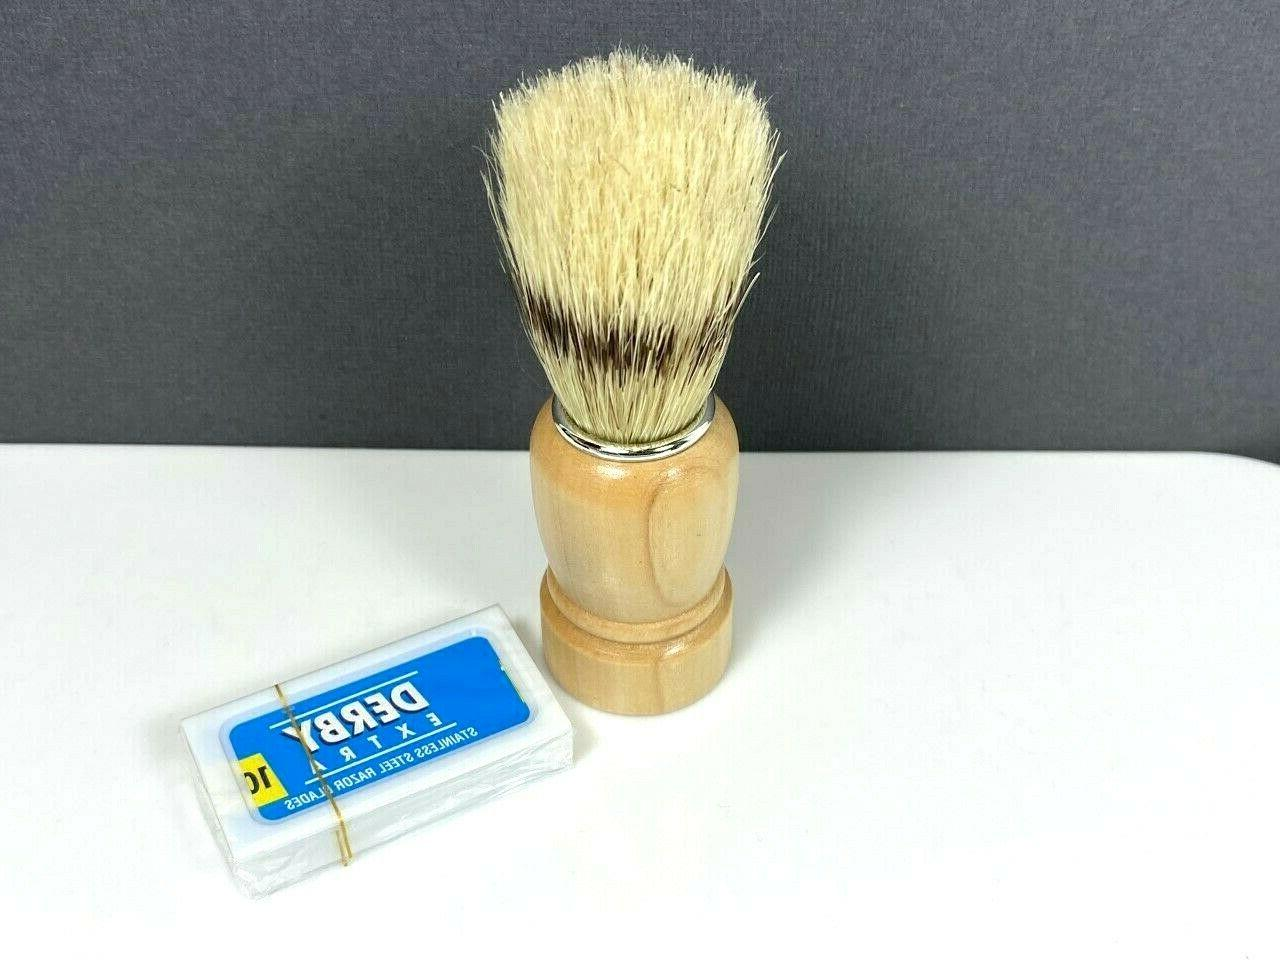 ARKO Cream brush + 10